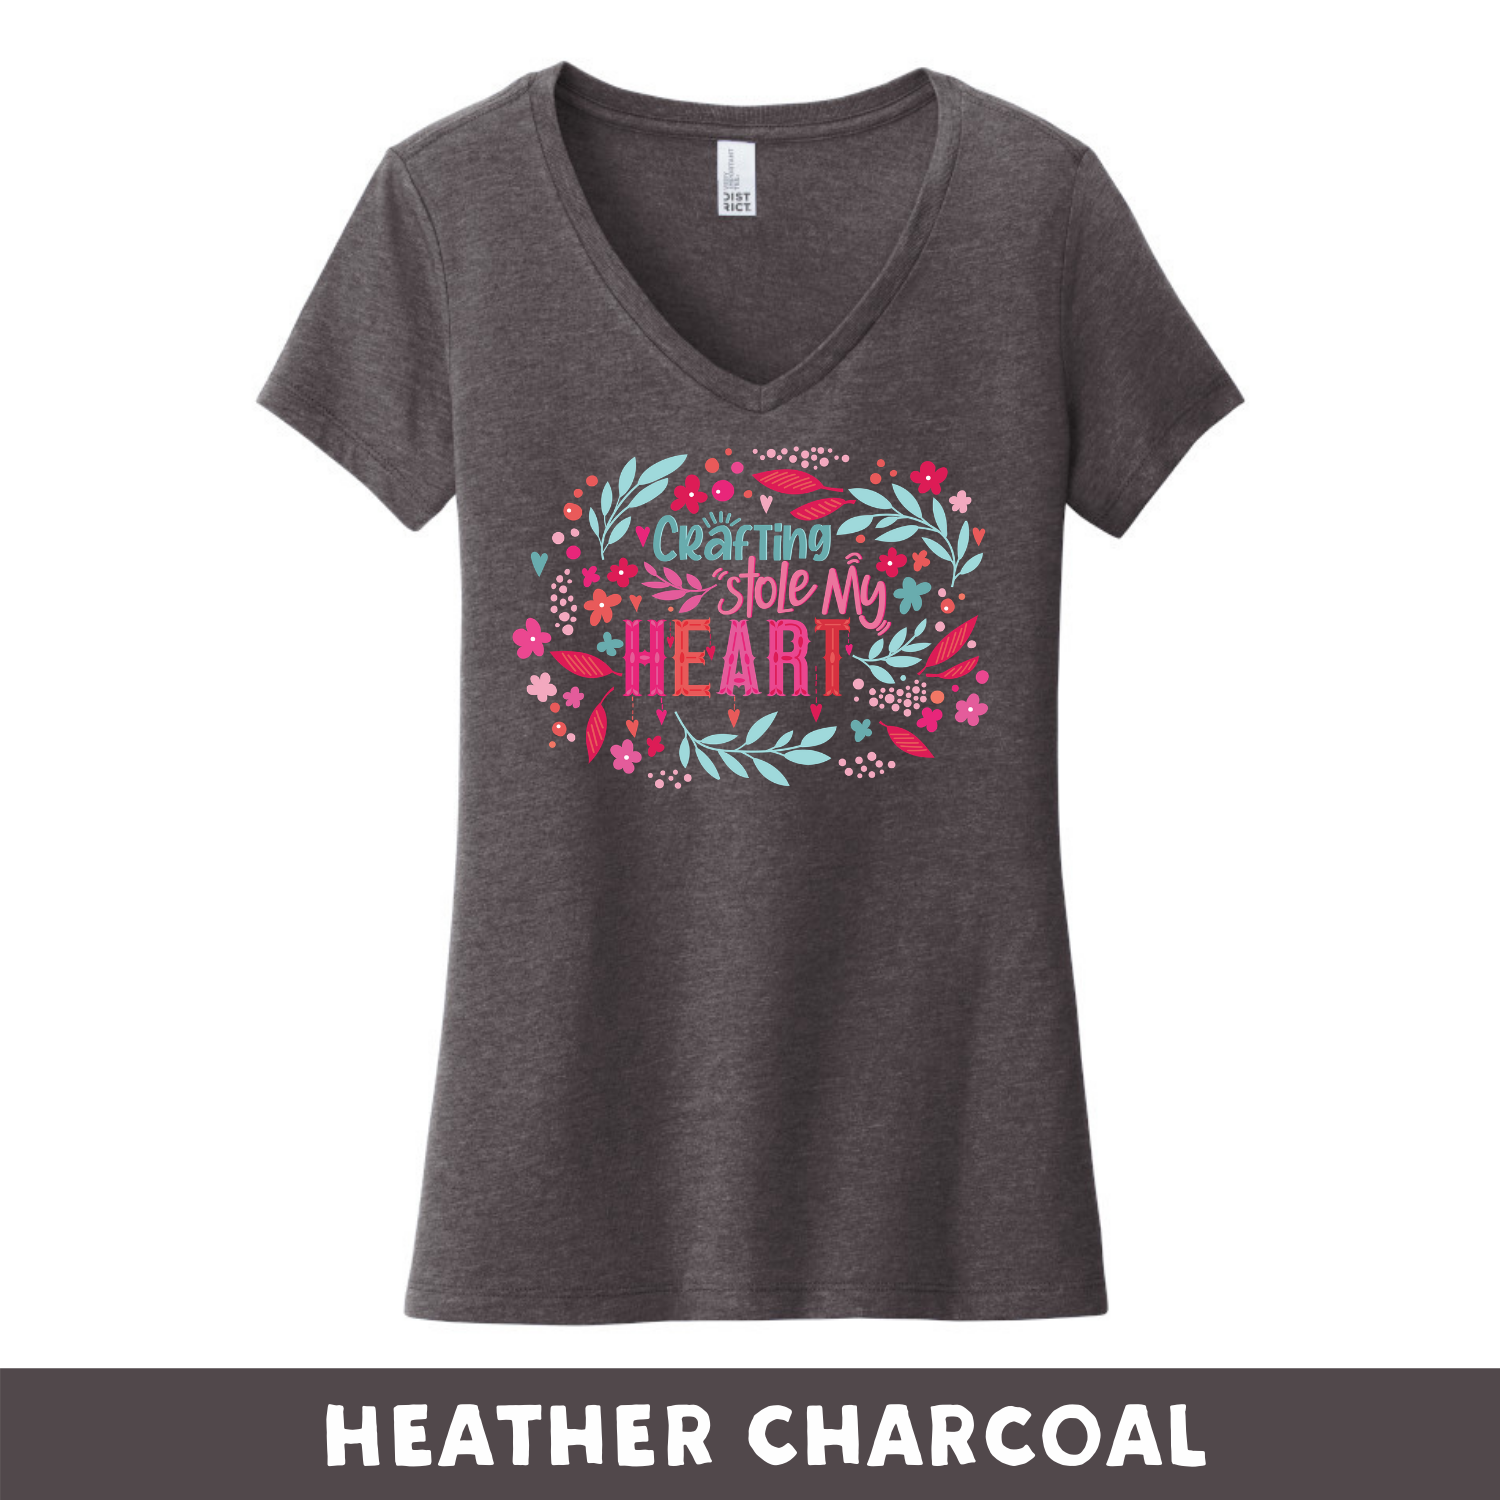 Heathered Charcoal - Woman's Cut V-Neck - Crafting Stole My Heart